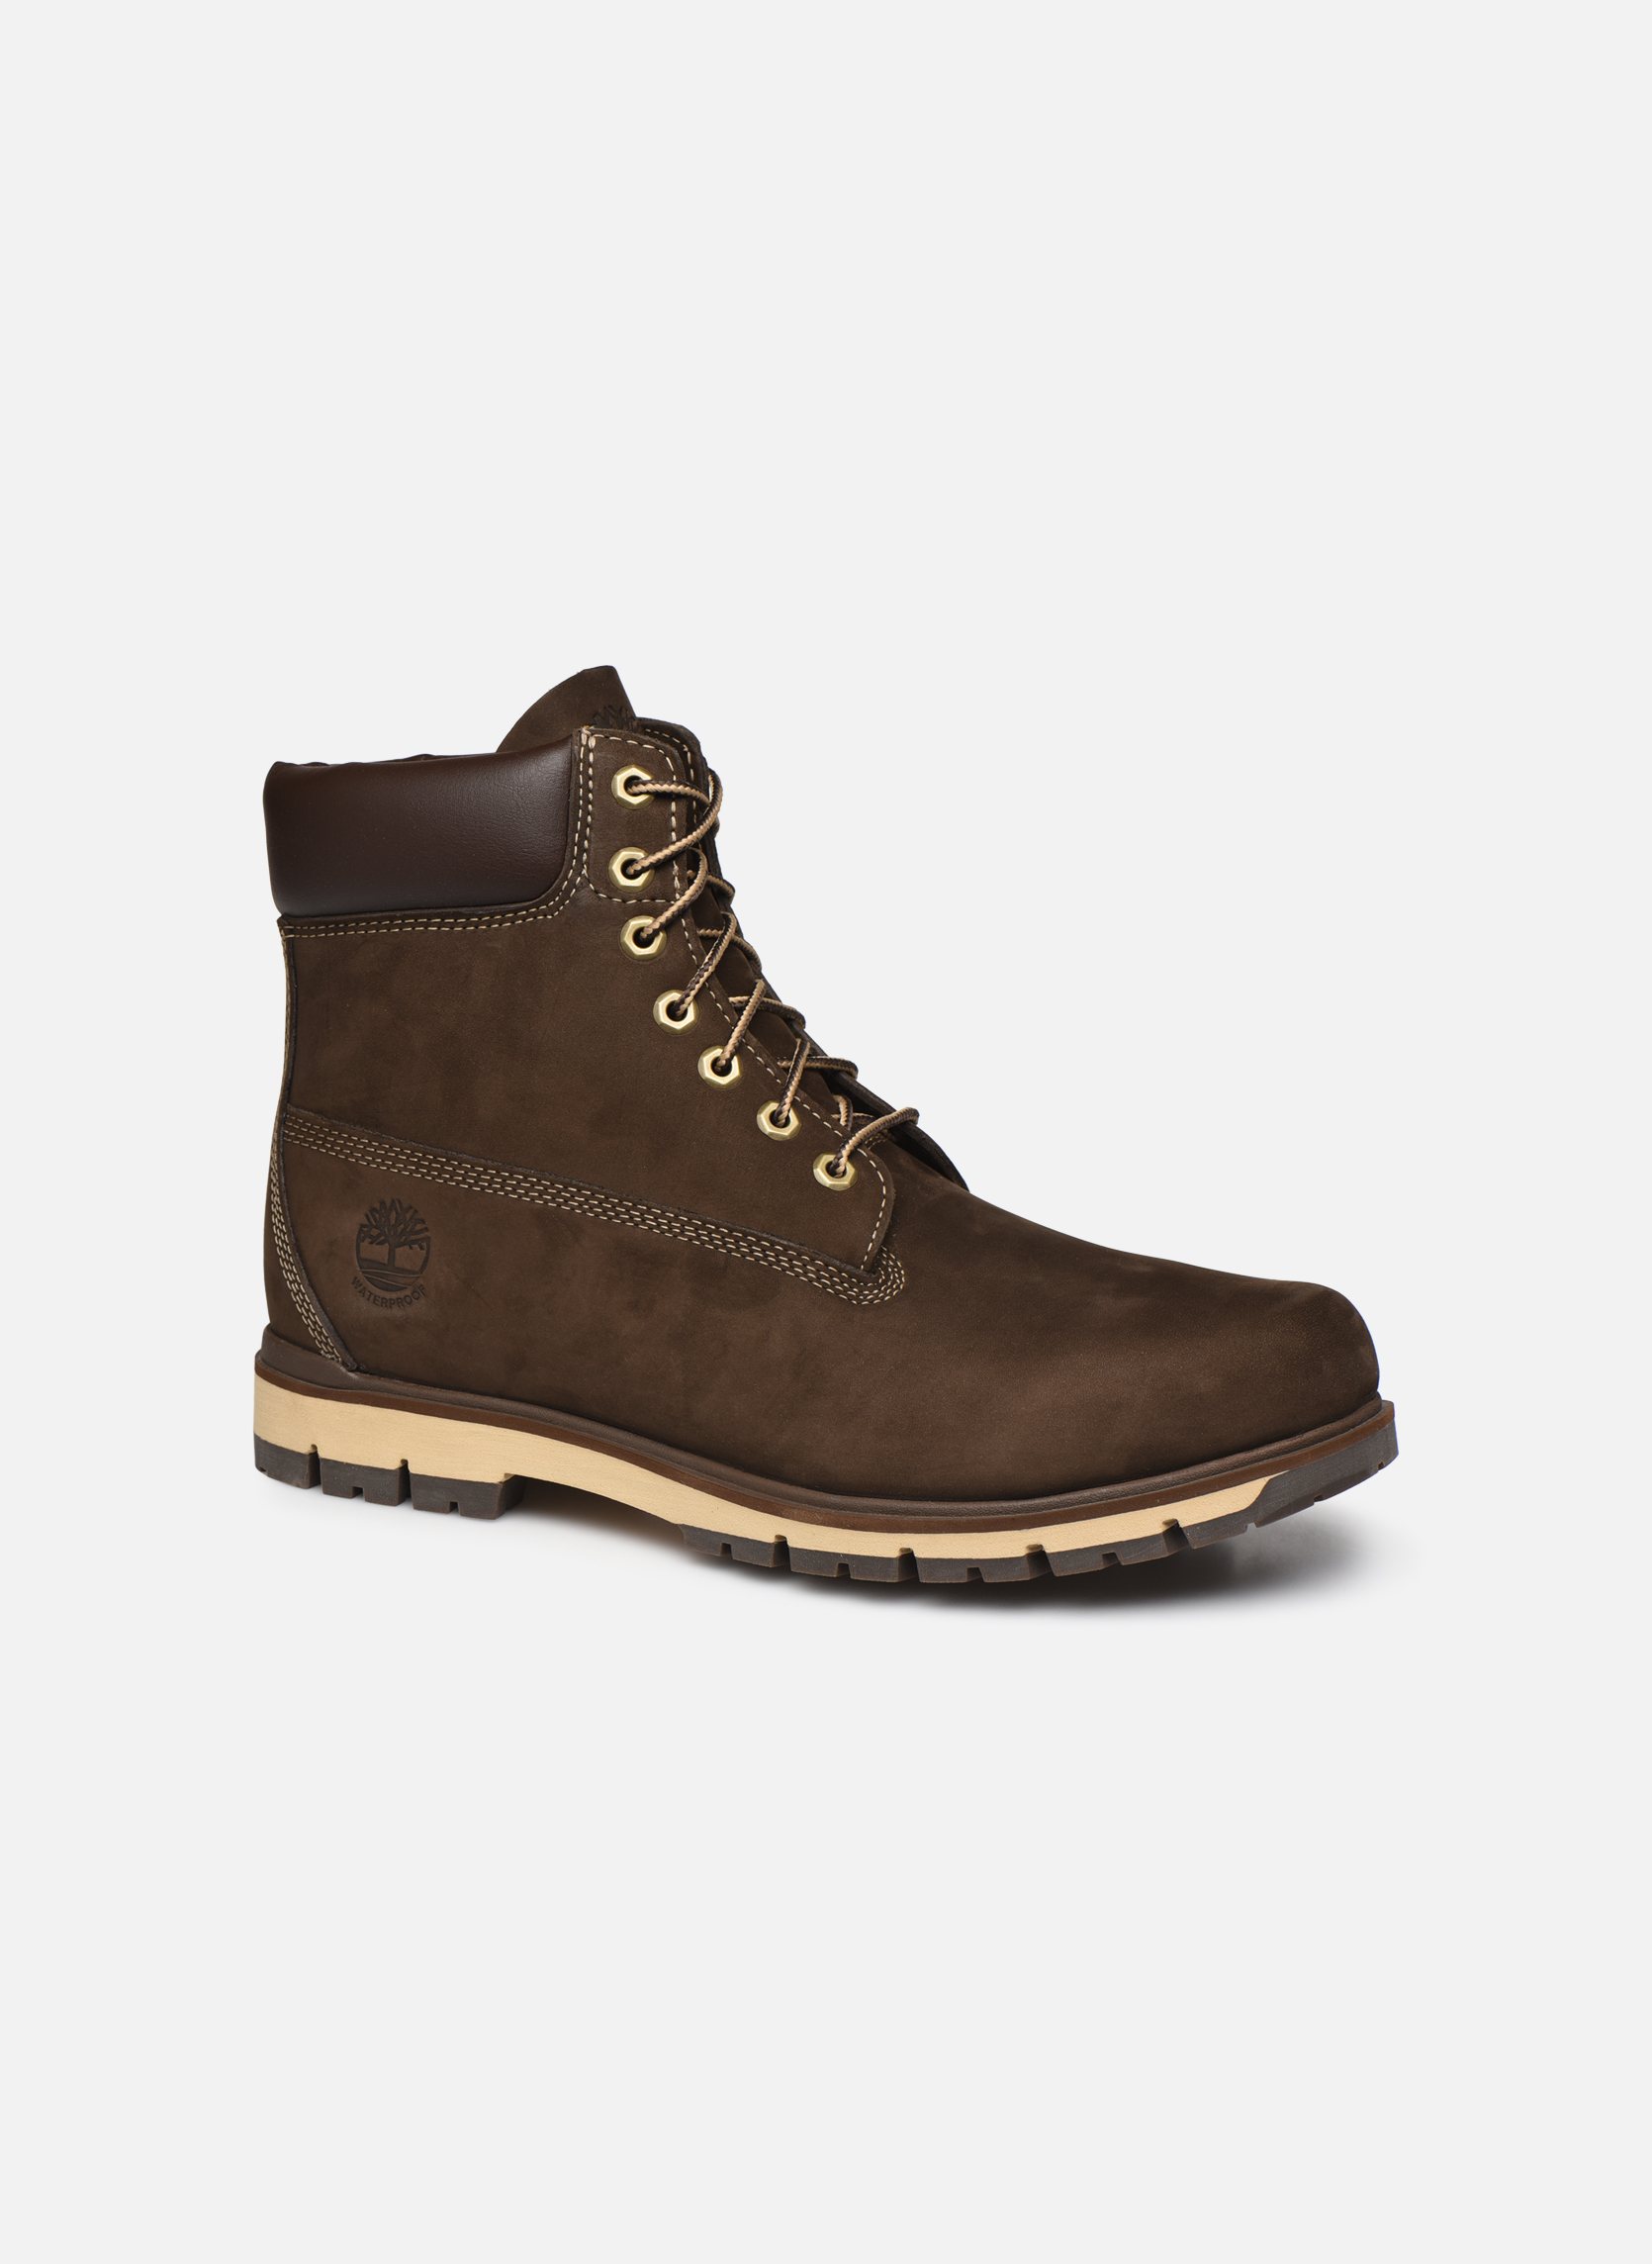 Timberland Homme Radford 6-Inch Bottes, Marron